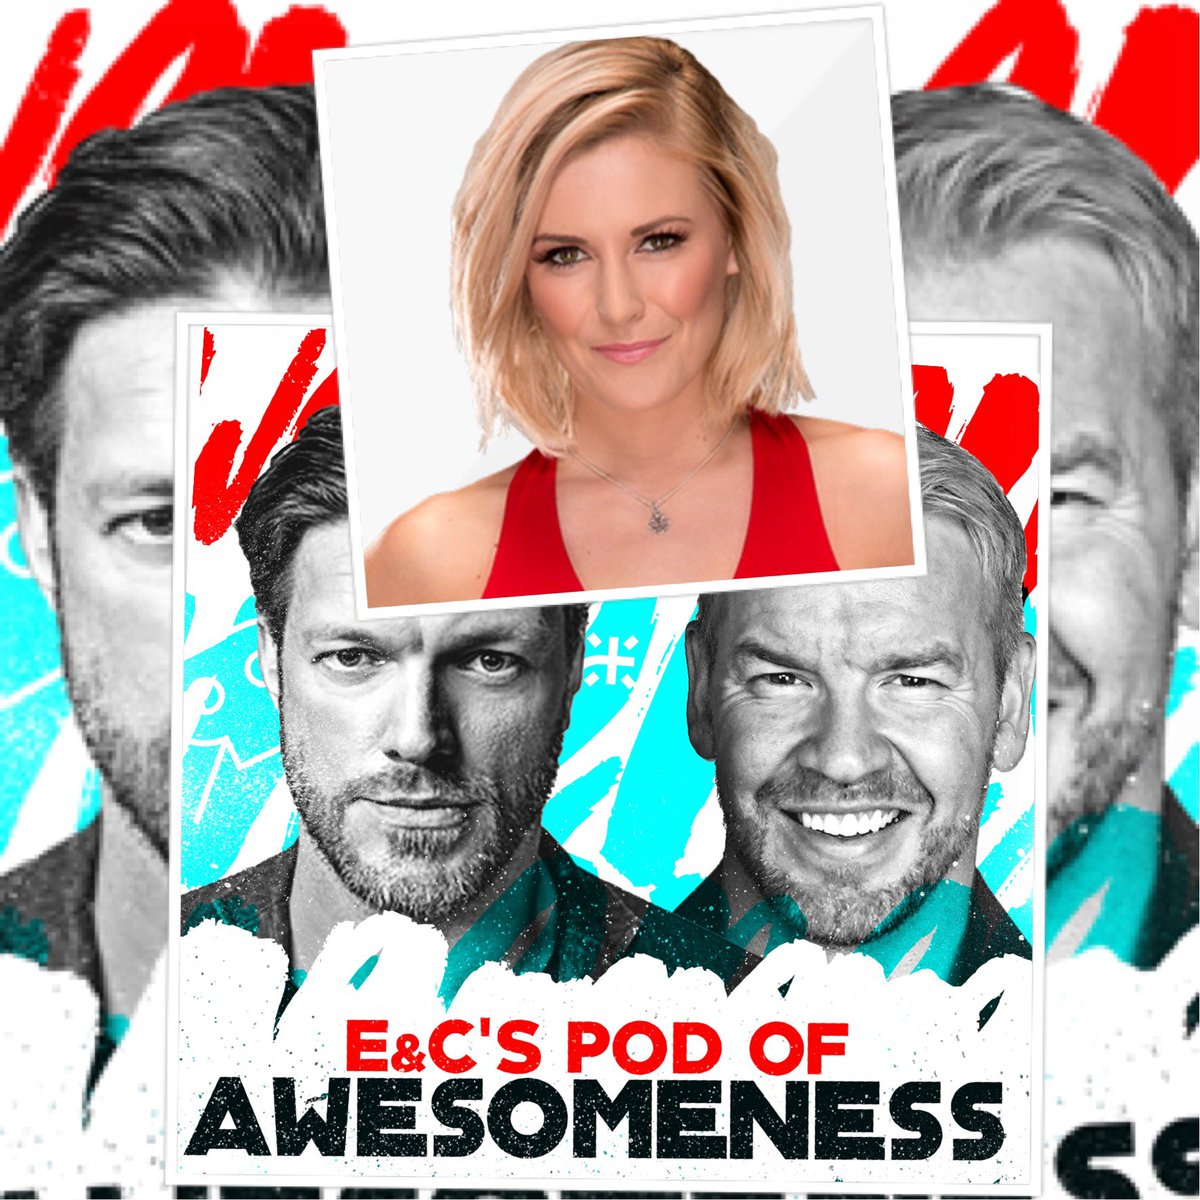 Now! On @EandCPod @ReneeYoungWWE joins us for a super fun and at times a tad weird conversation.. it's probably because we're all hopped up on Hickory Sticks and Ketchup Chips + Tooommmaaay @THETOMMYDREAMER w/ #TalesFromTheIndies itunes.apple.com/us/podcast/e-c…